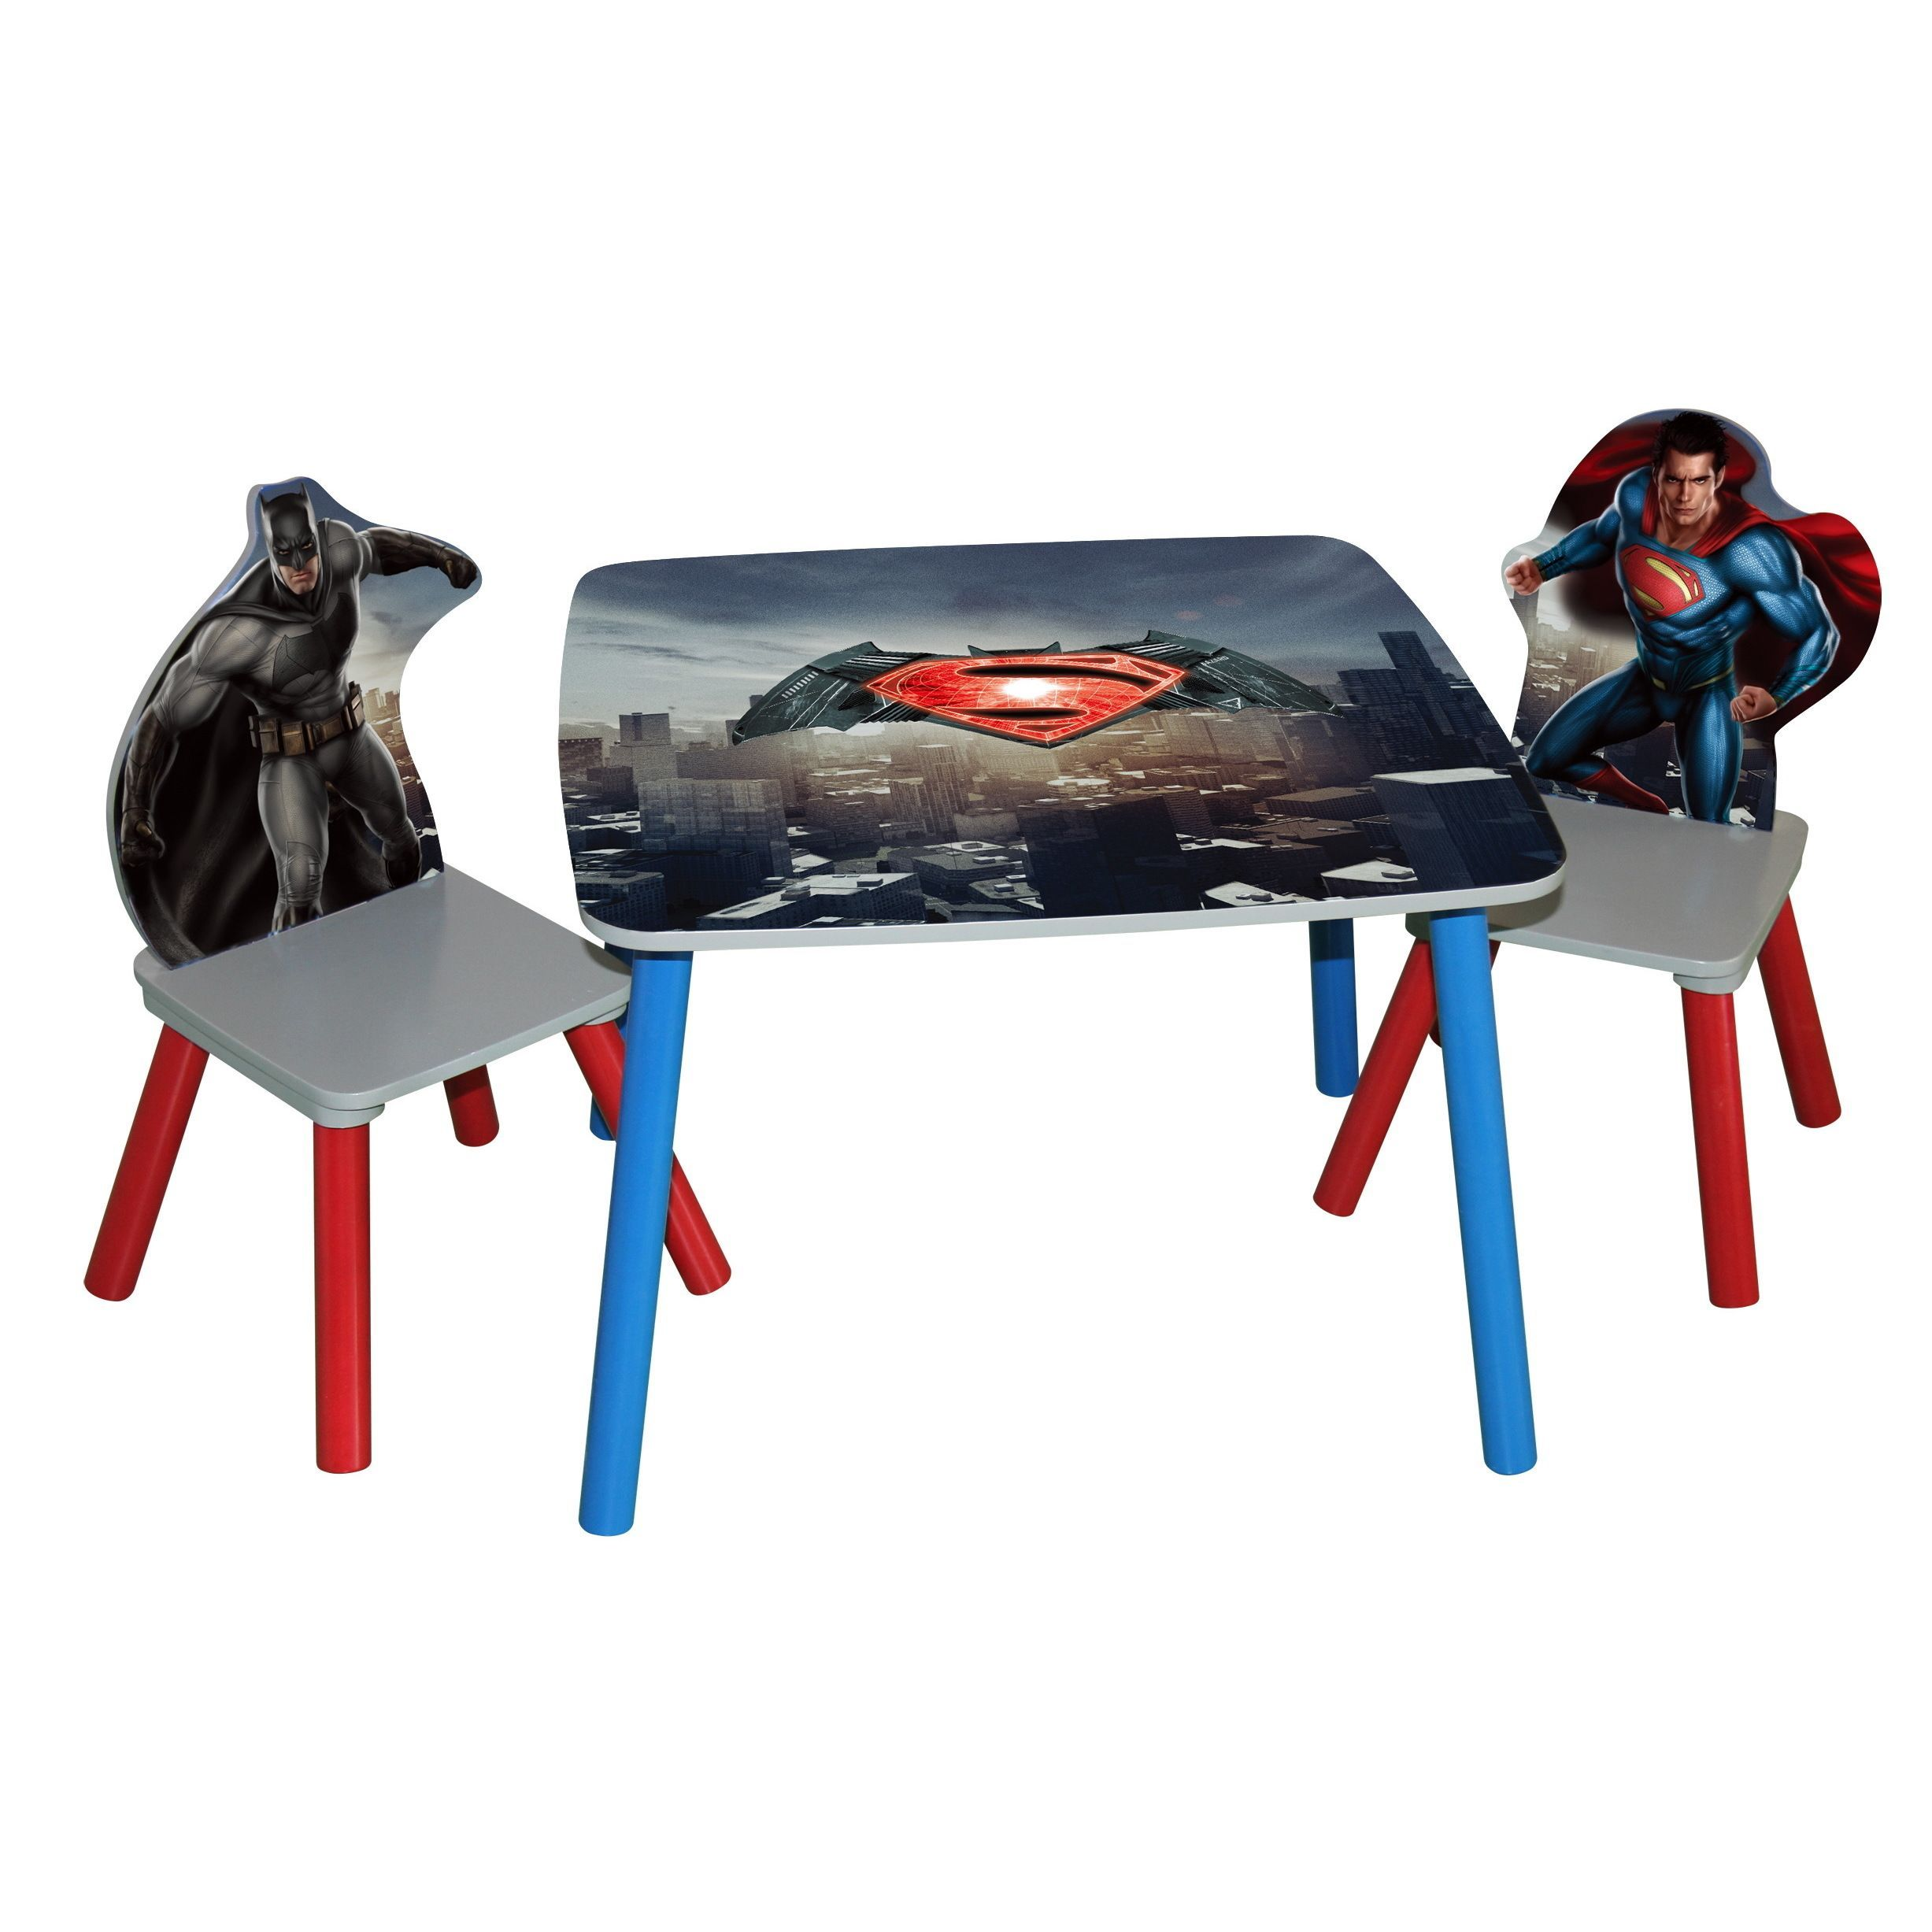 Batman Childrens Table And Chairs Ethan Allen Gibson Chair O Kids Vs Superman Dawn Of Justice Wooden Set Black